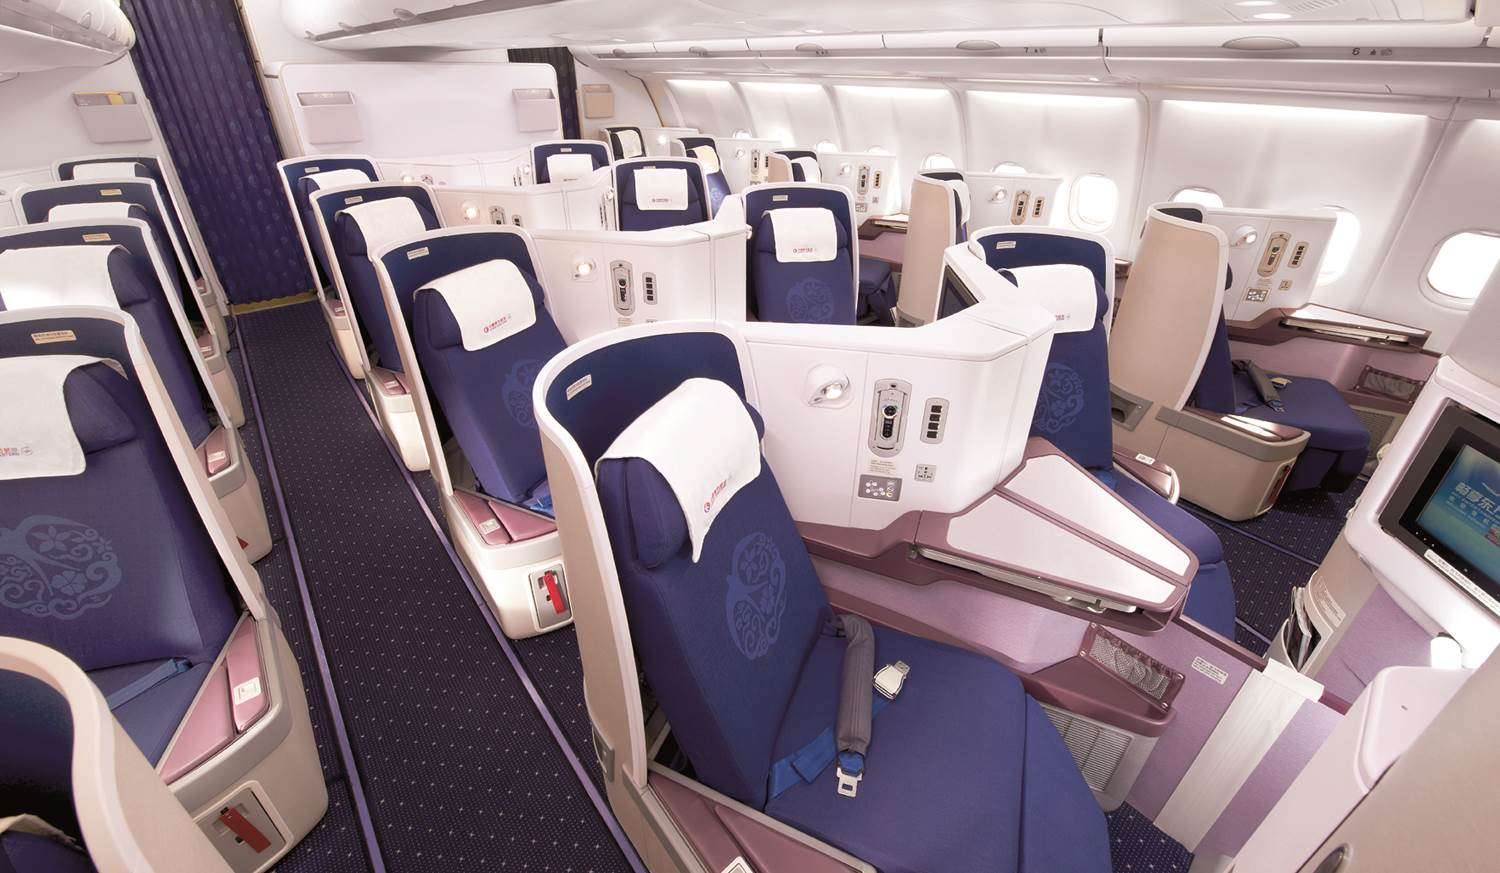 China Eastern A330 Business Class